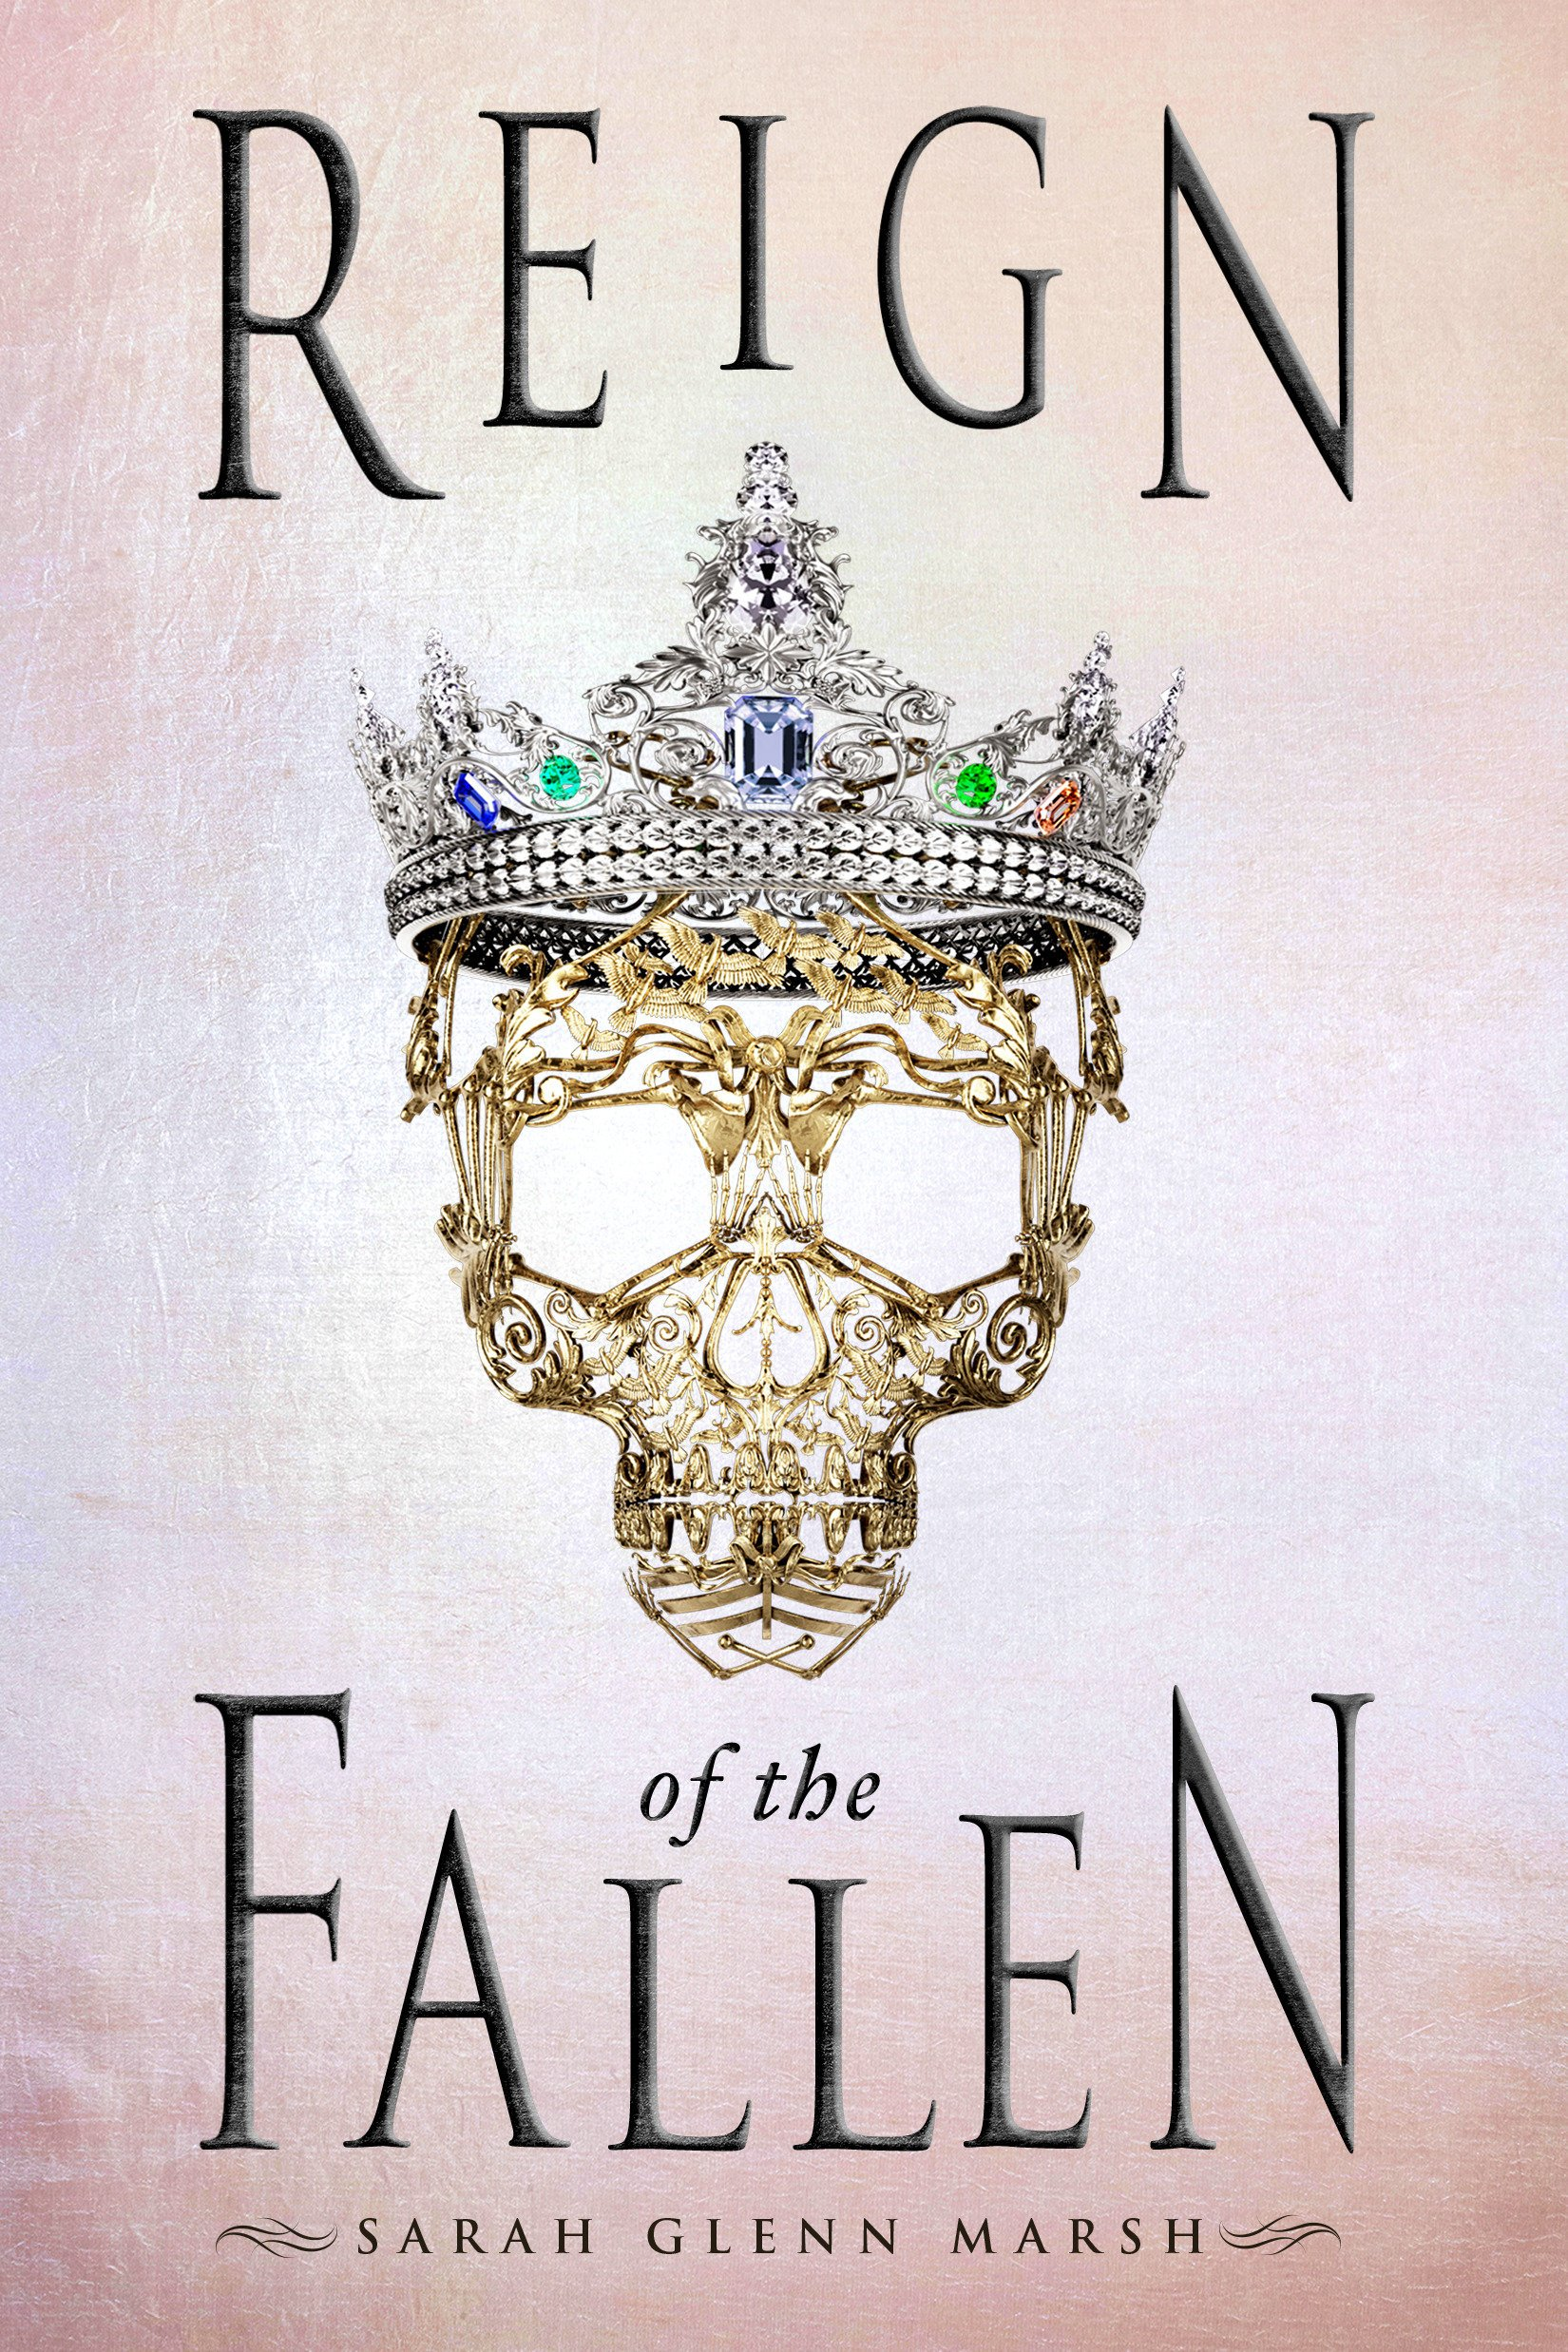 Amazon.com: Reign of the Fallen (9780448494395): Glenn Marsh, Sarah: Books